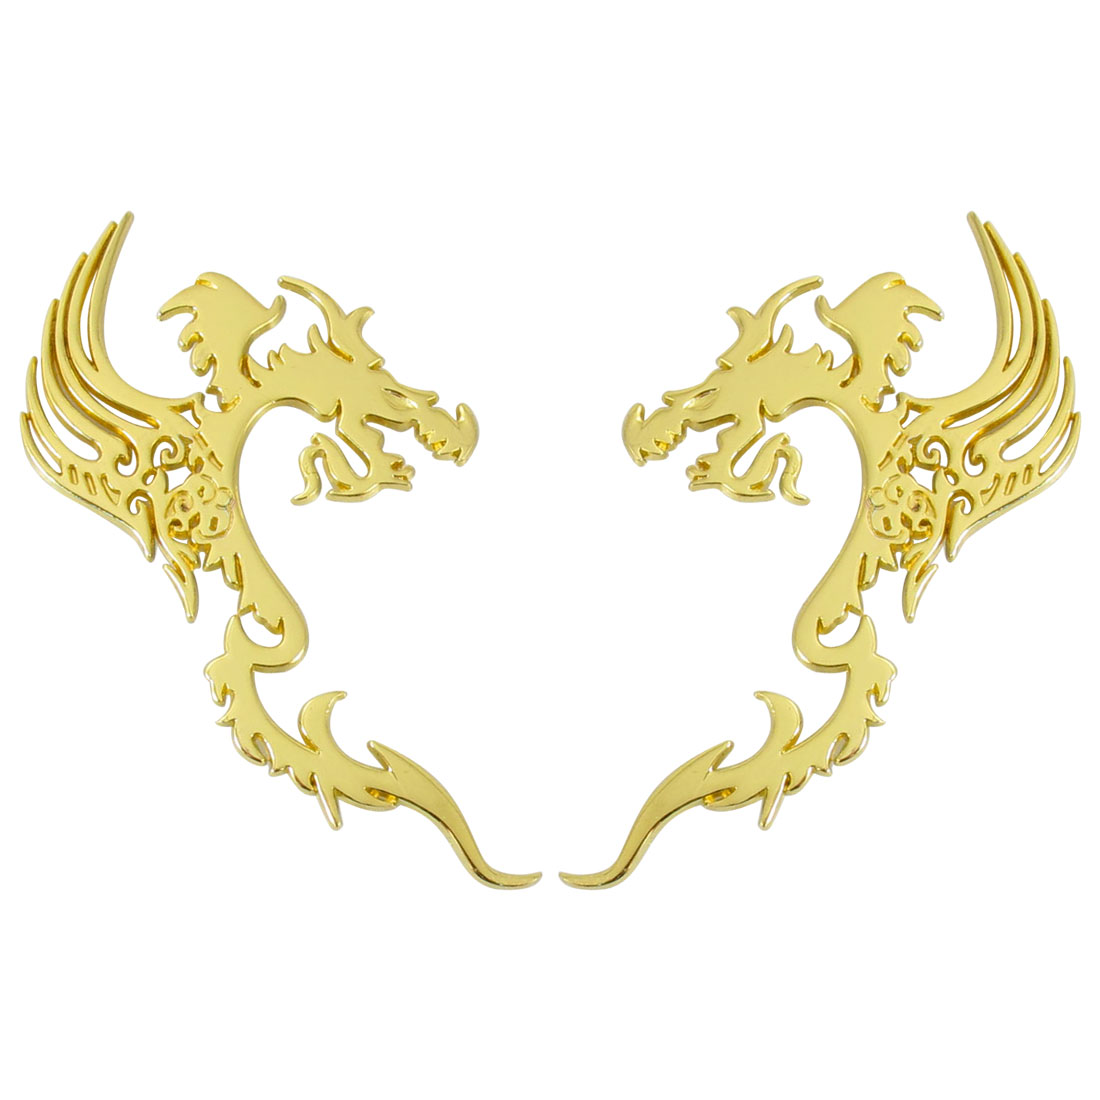 Pair Gold Tone 3D Dragon Pattern Decal Sticker for Car Vehicle